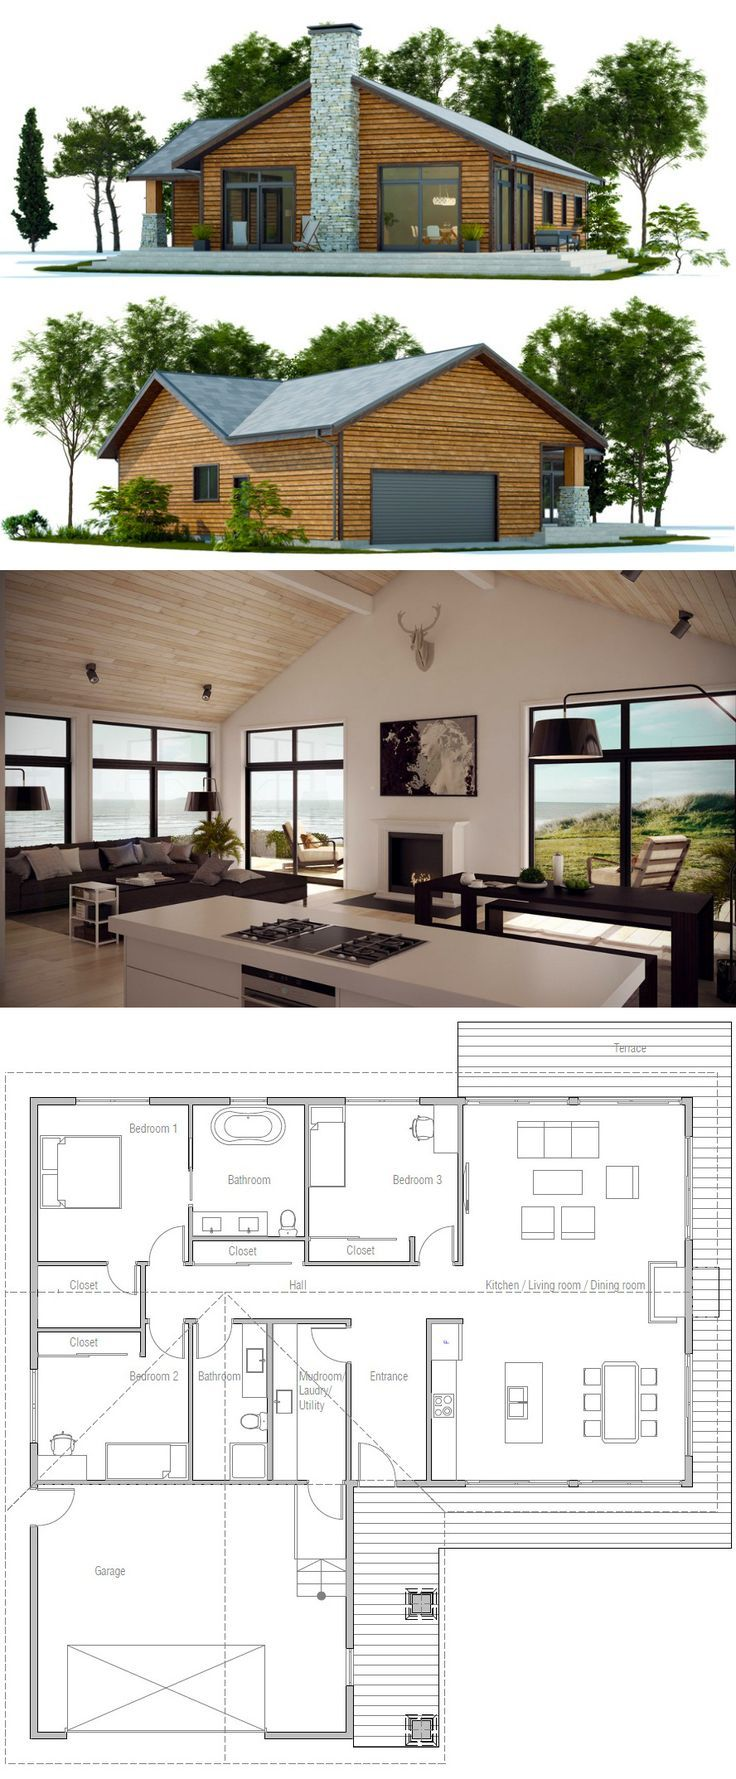 Home Plans Nice Interior And Exterior Home Design With: 33 Best Images About Two Bedroom House Plans On Pinterest